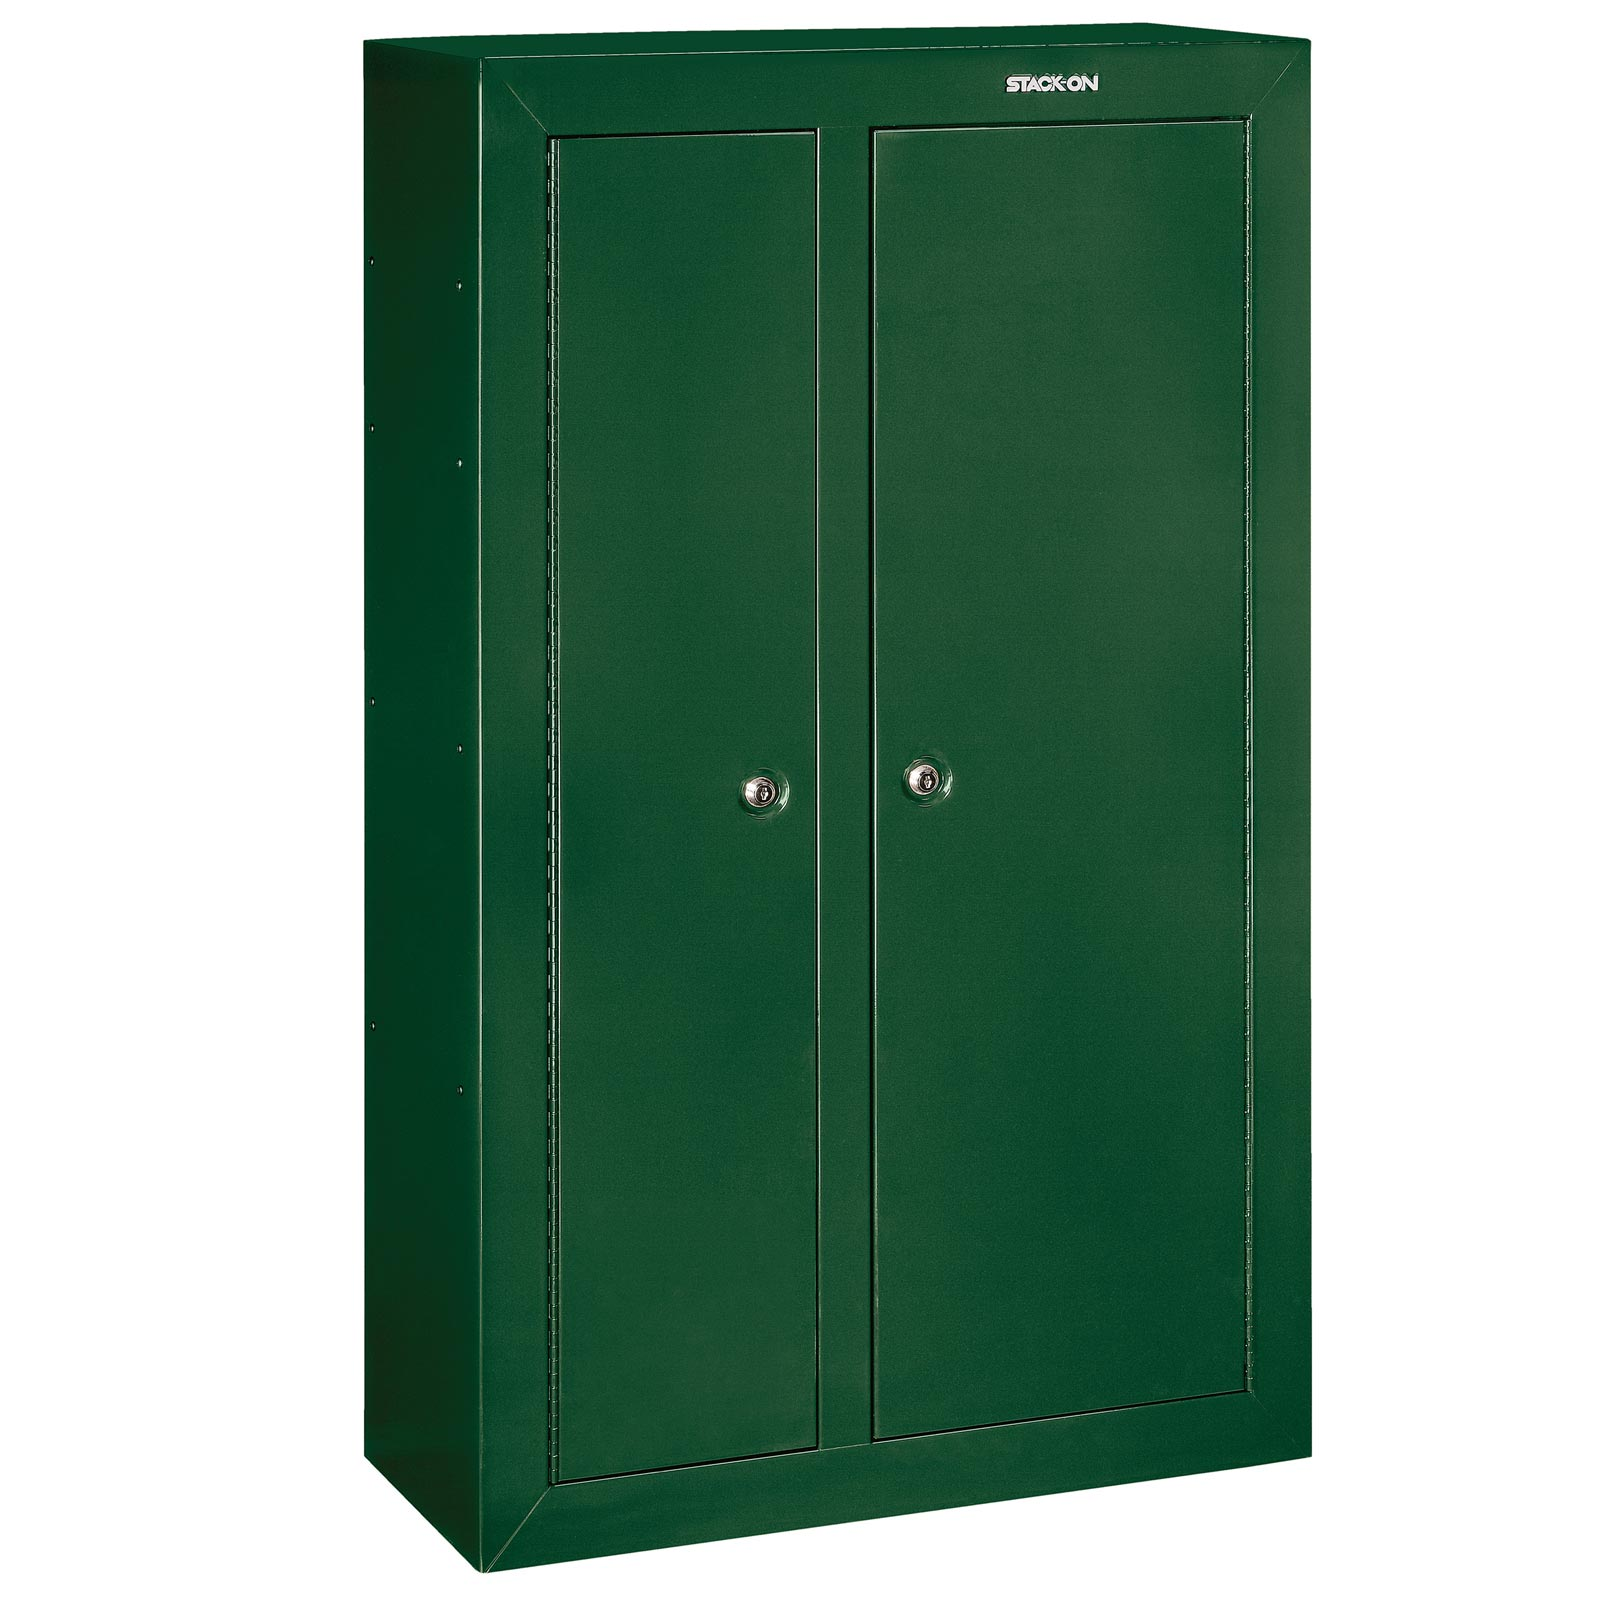 Stack On Gcdg 924 Gun Cabinet Double Door Security Cabinet 10 Gun Gcdg 924